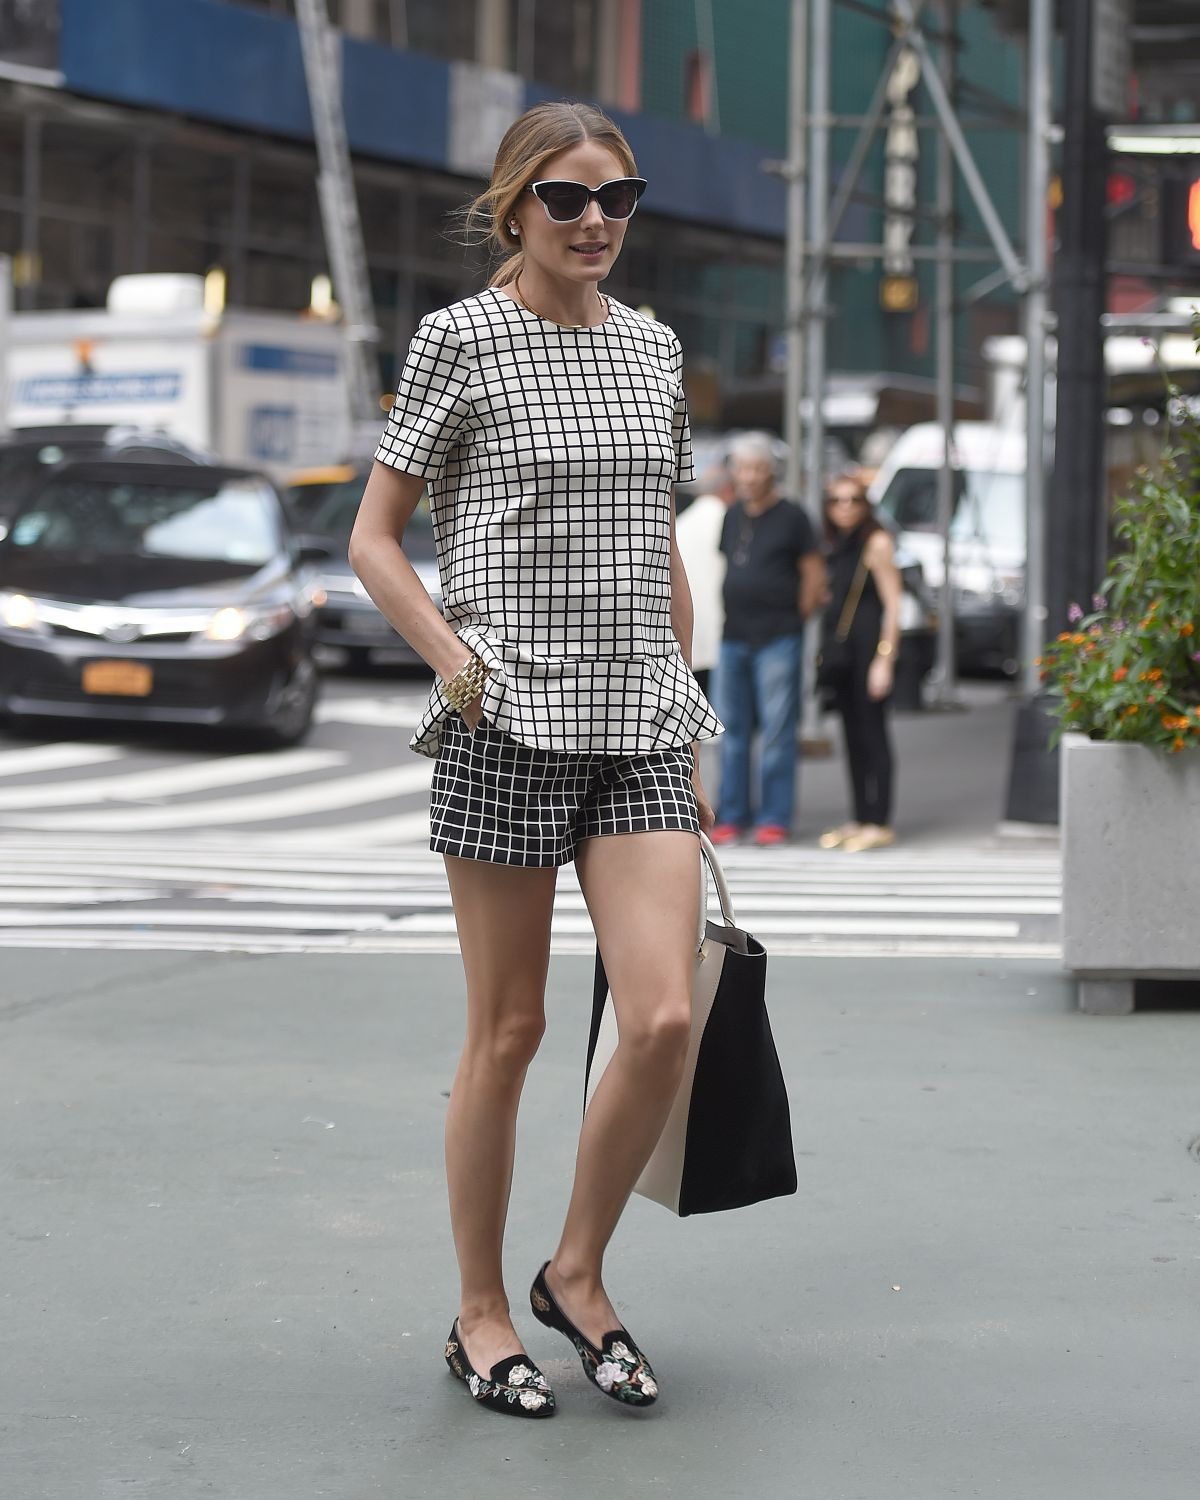 olivia_palermo_out_and_about_in_new_york_1706_11.jpg (1200×1500)